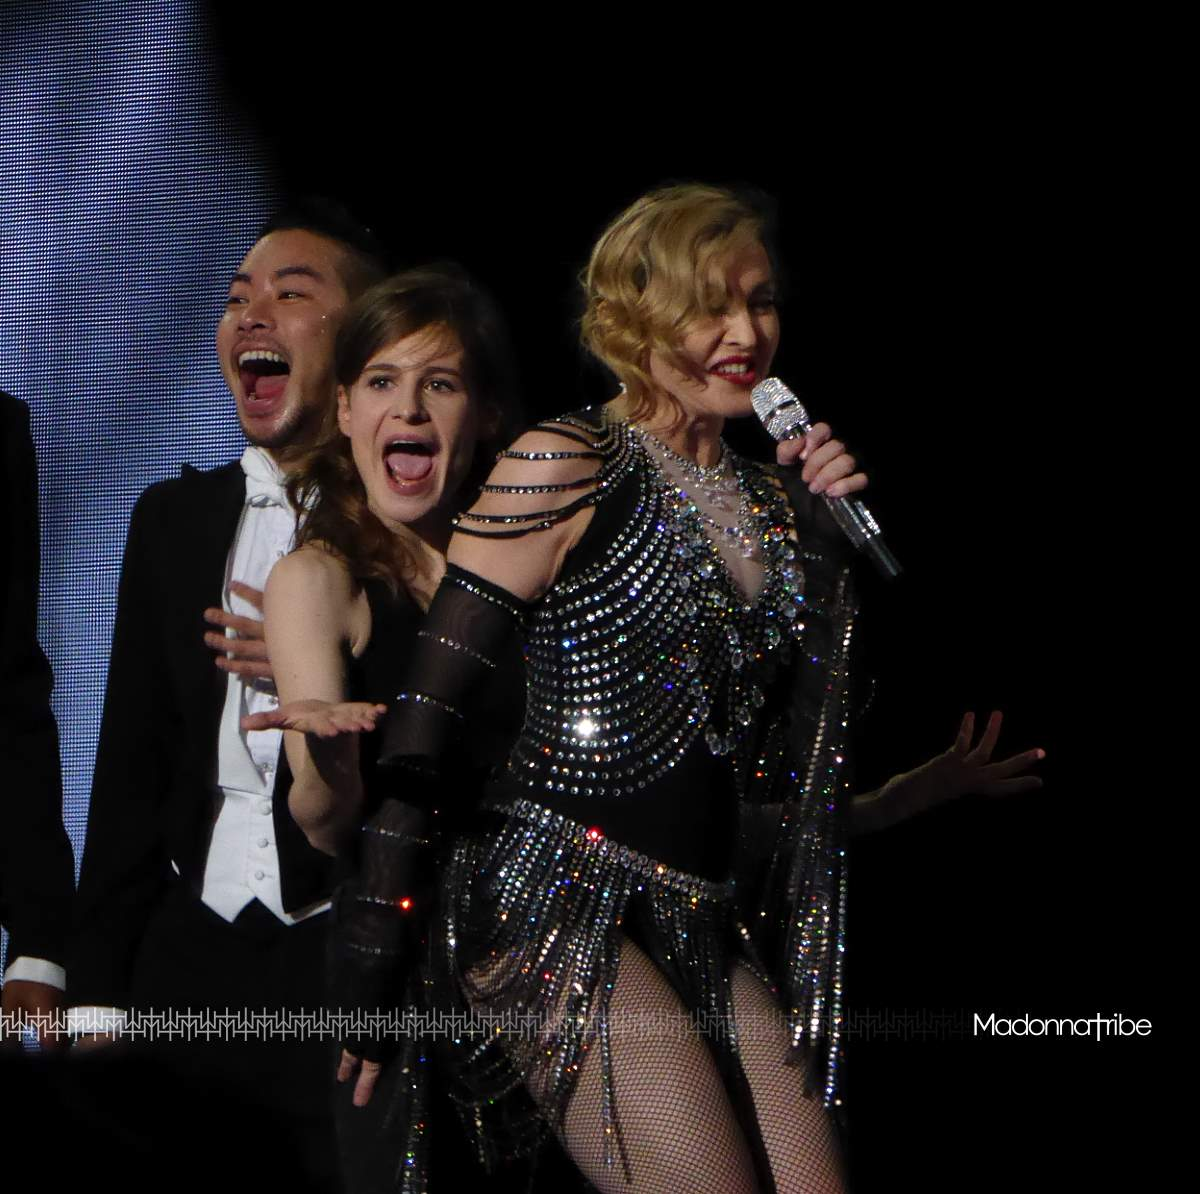 Christine & The Queens on stage with Madonna in Bercy